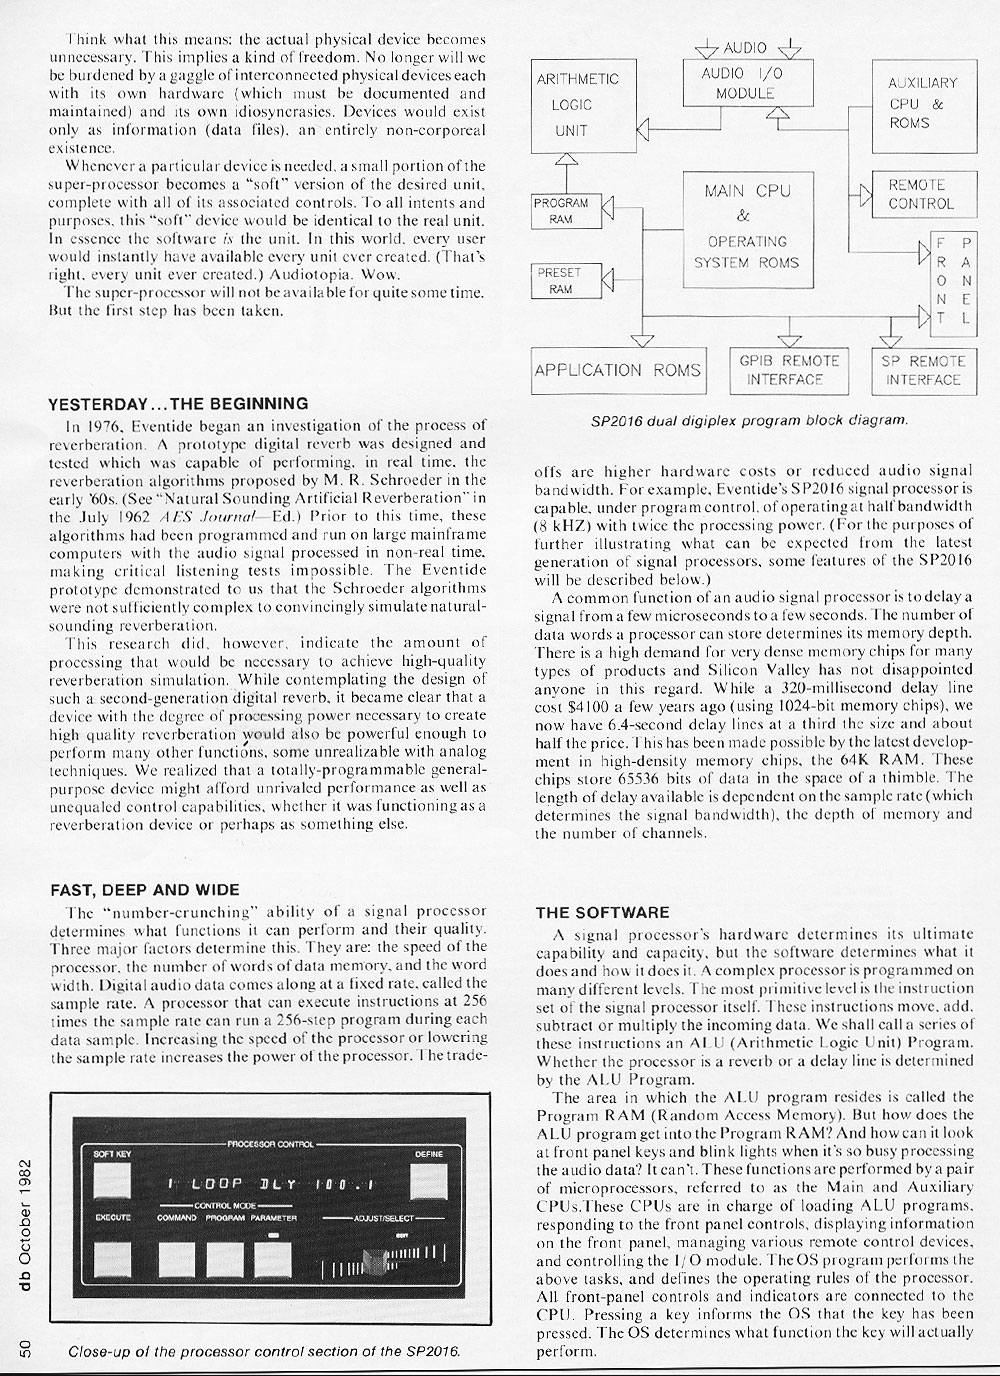 DB Magazine — Digital Audio Processing, October 1982, Page 3